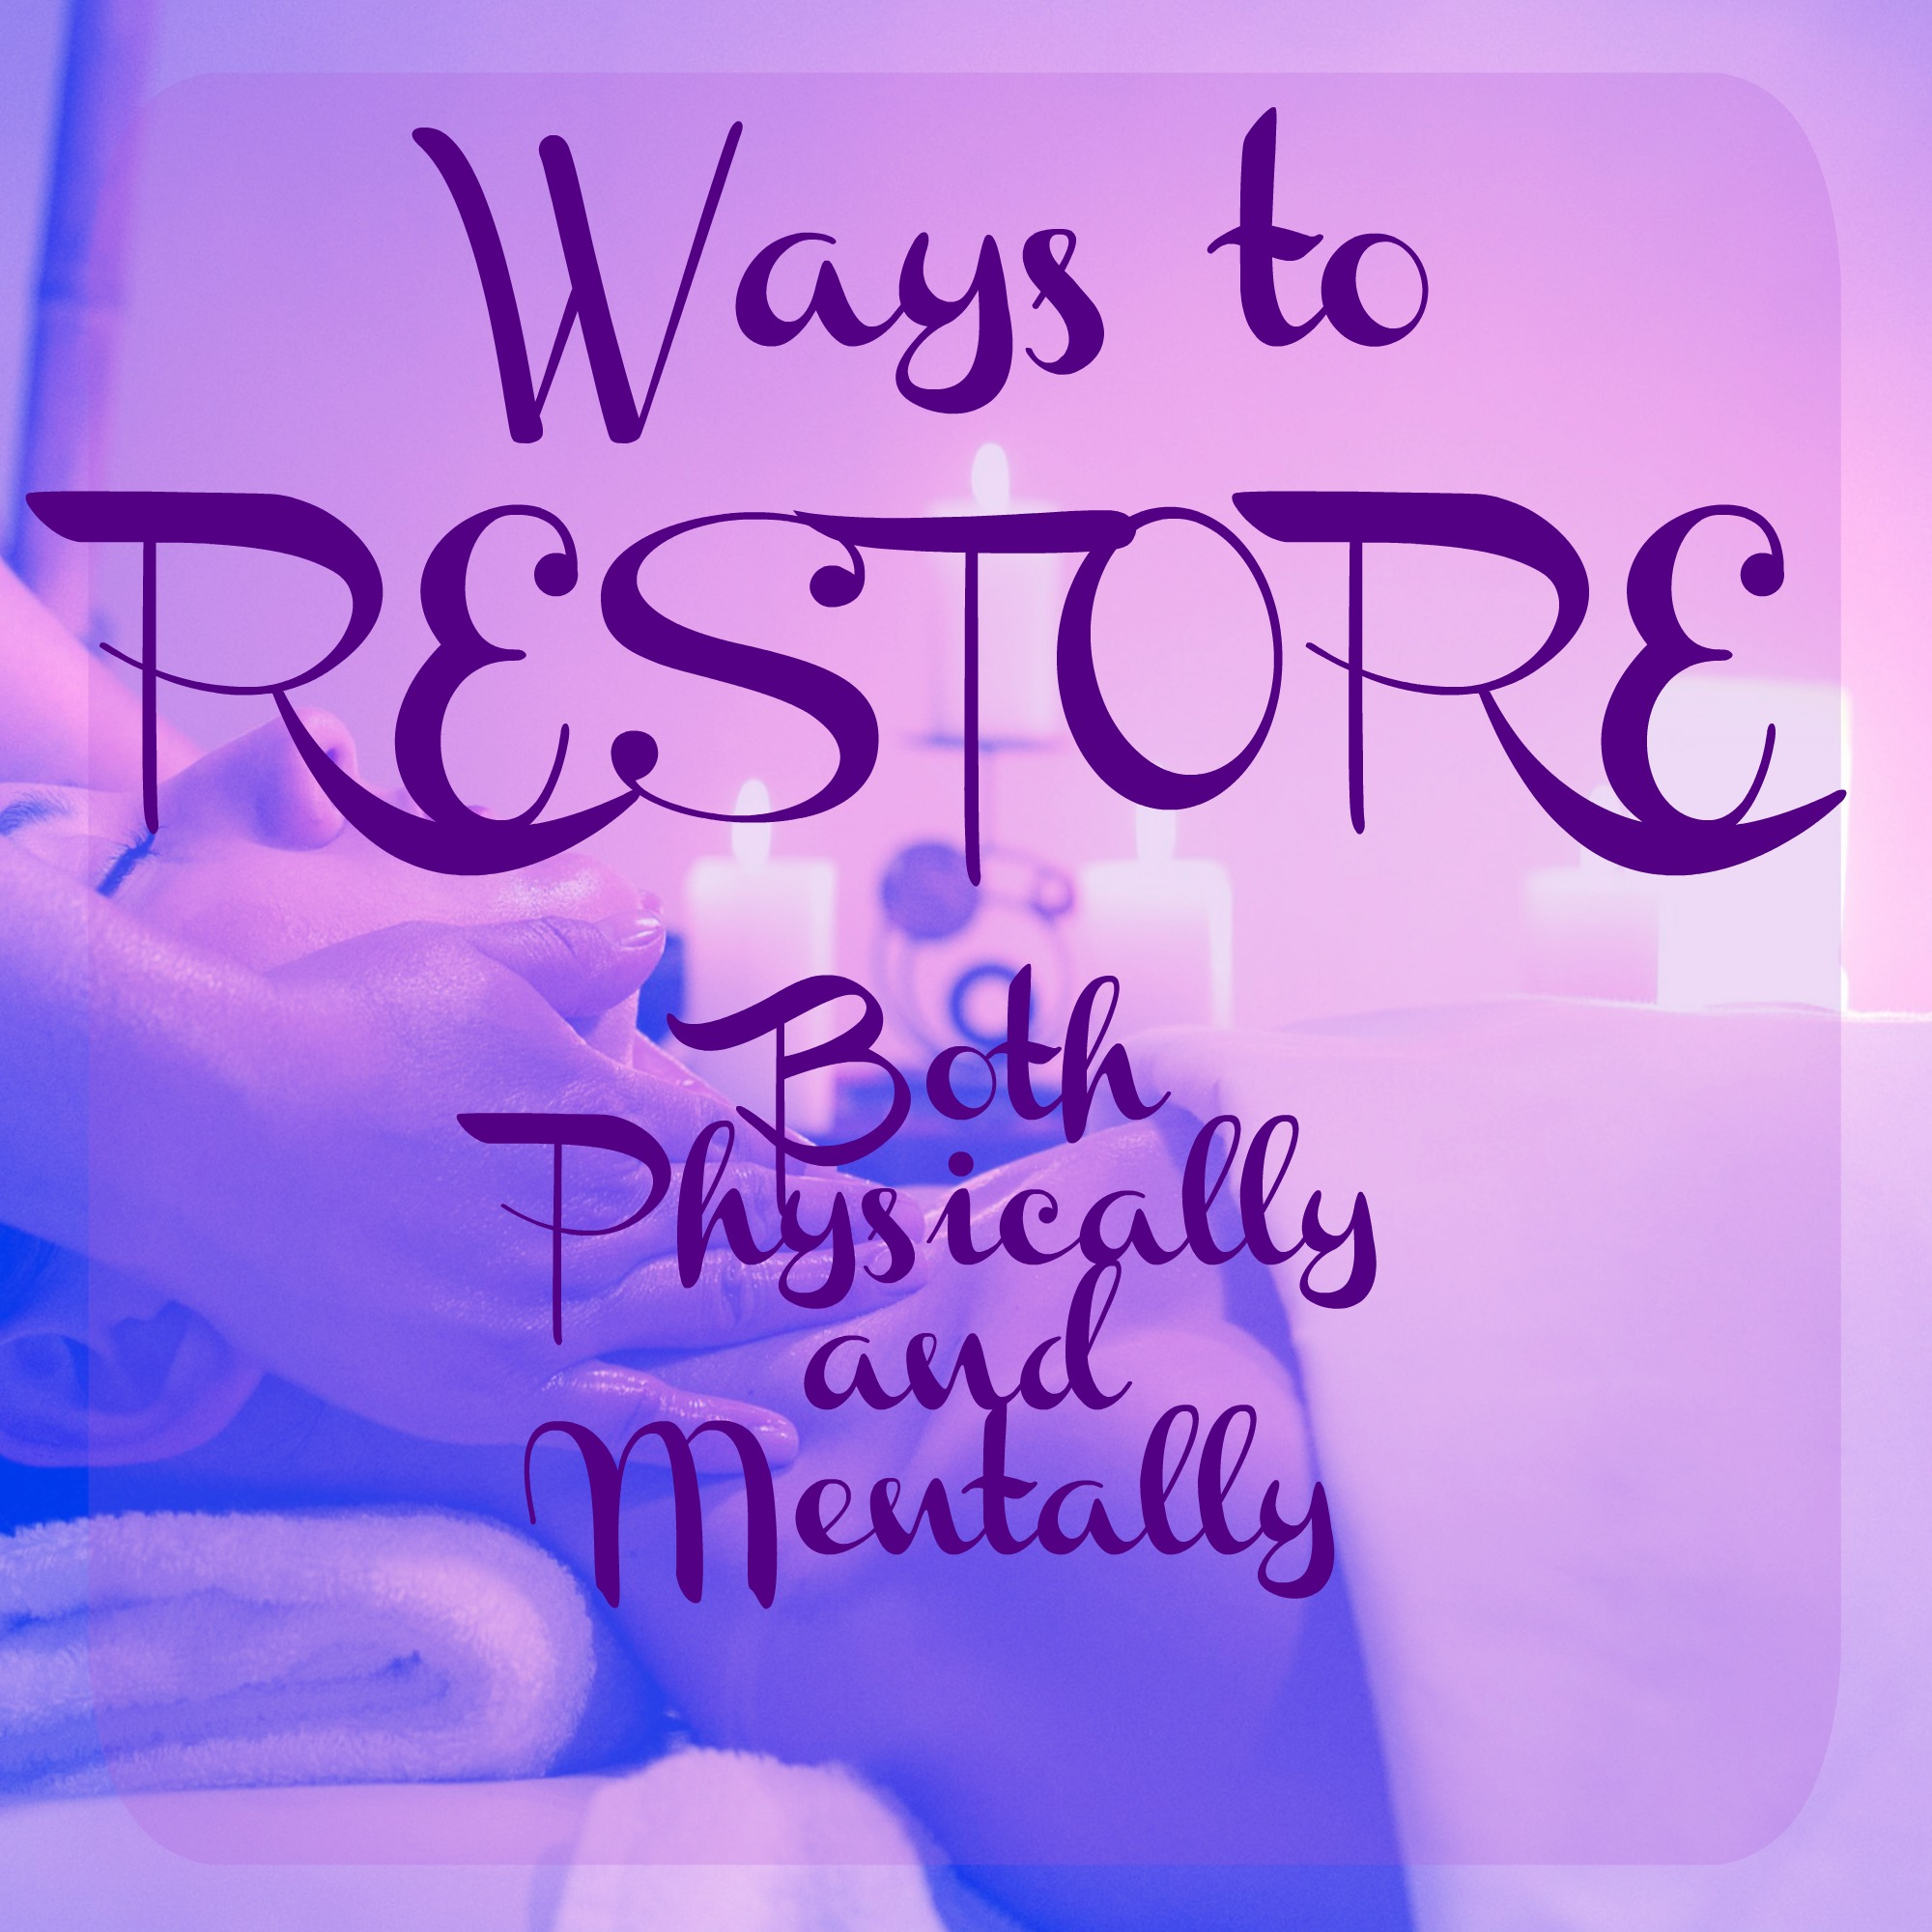 10 Ways to Restore Mentally and Physically